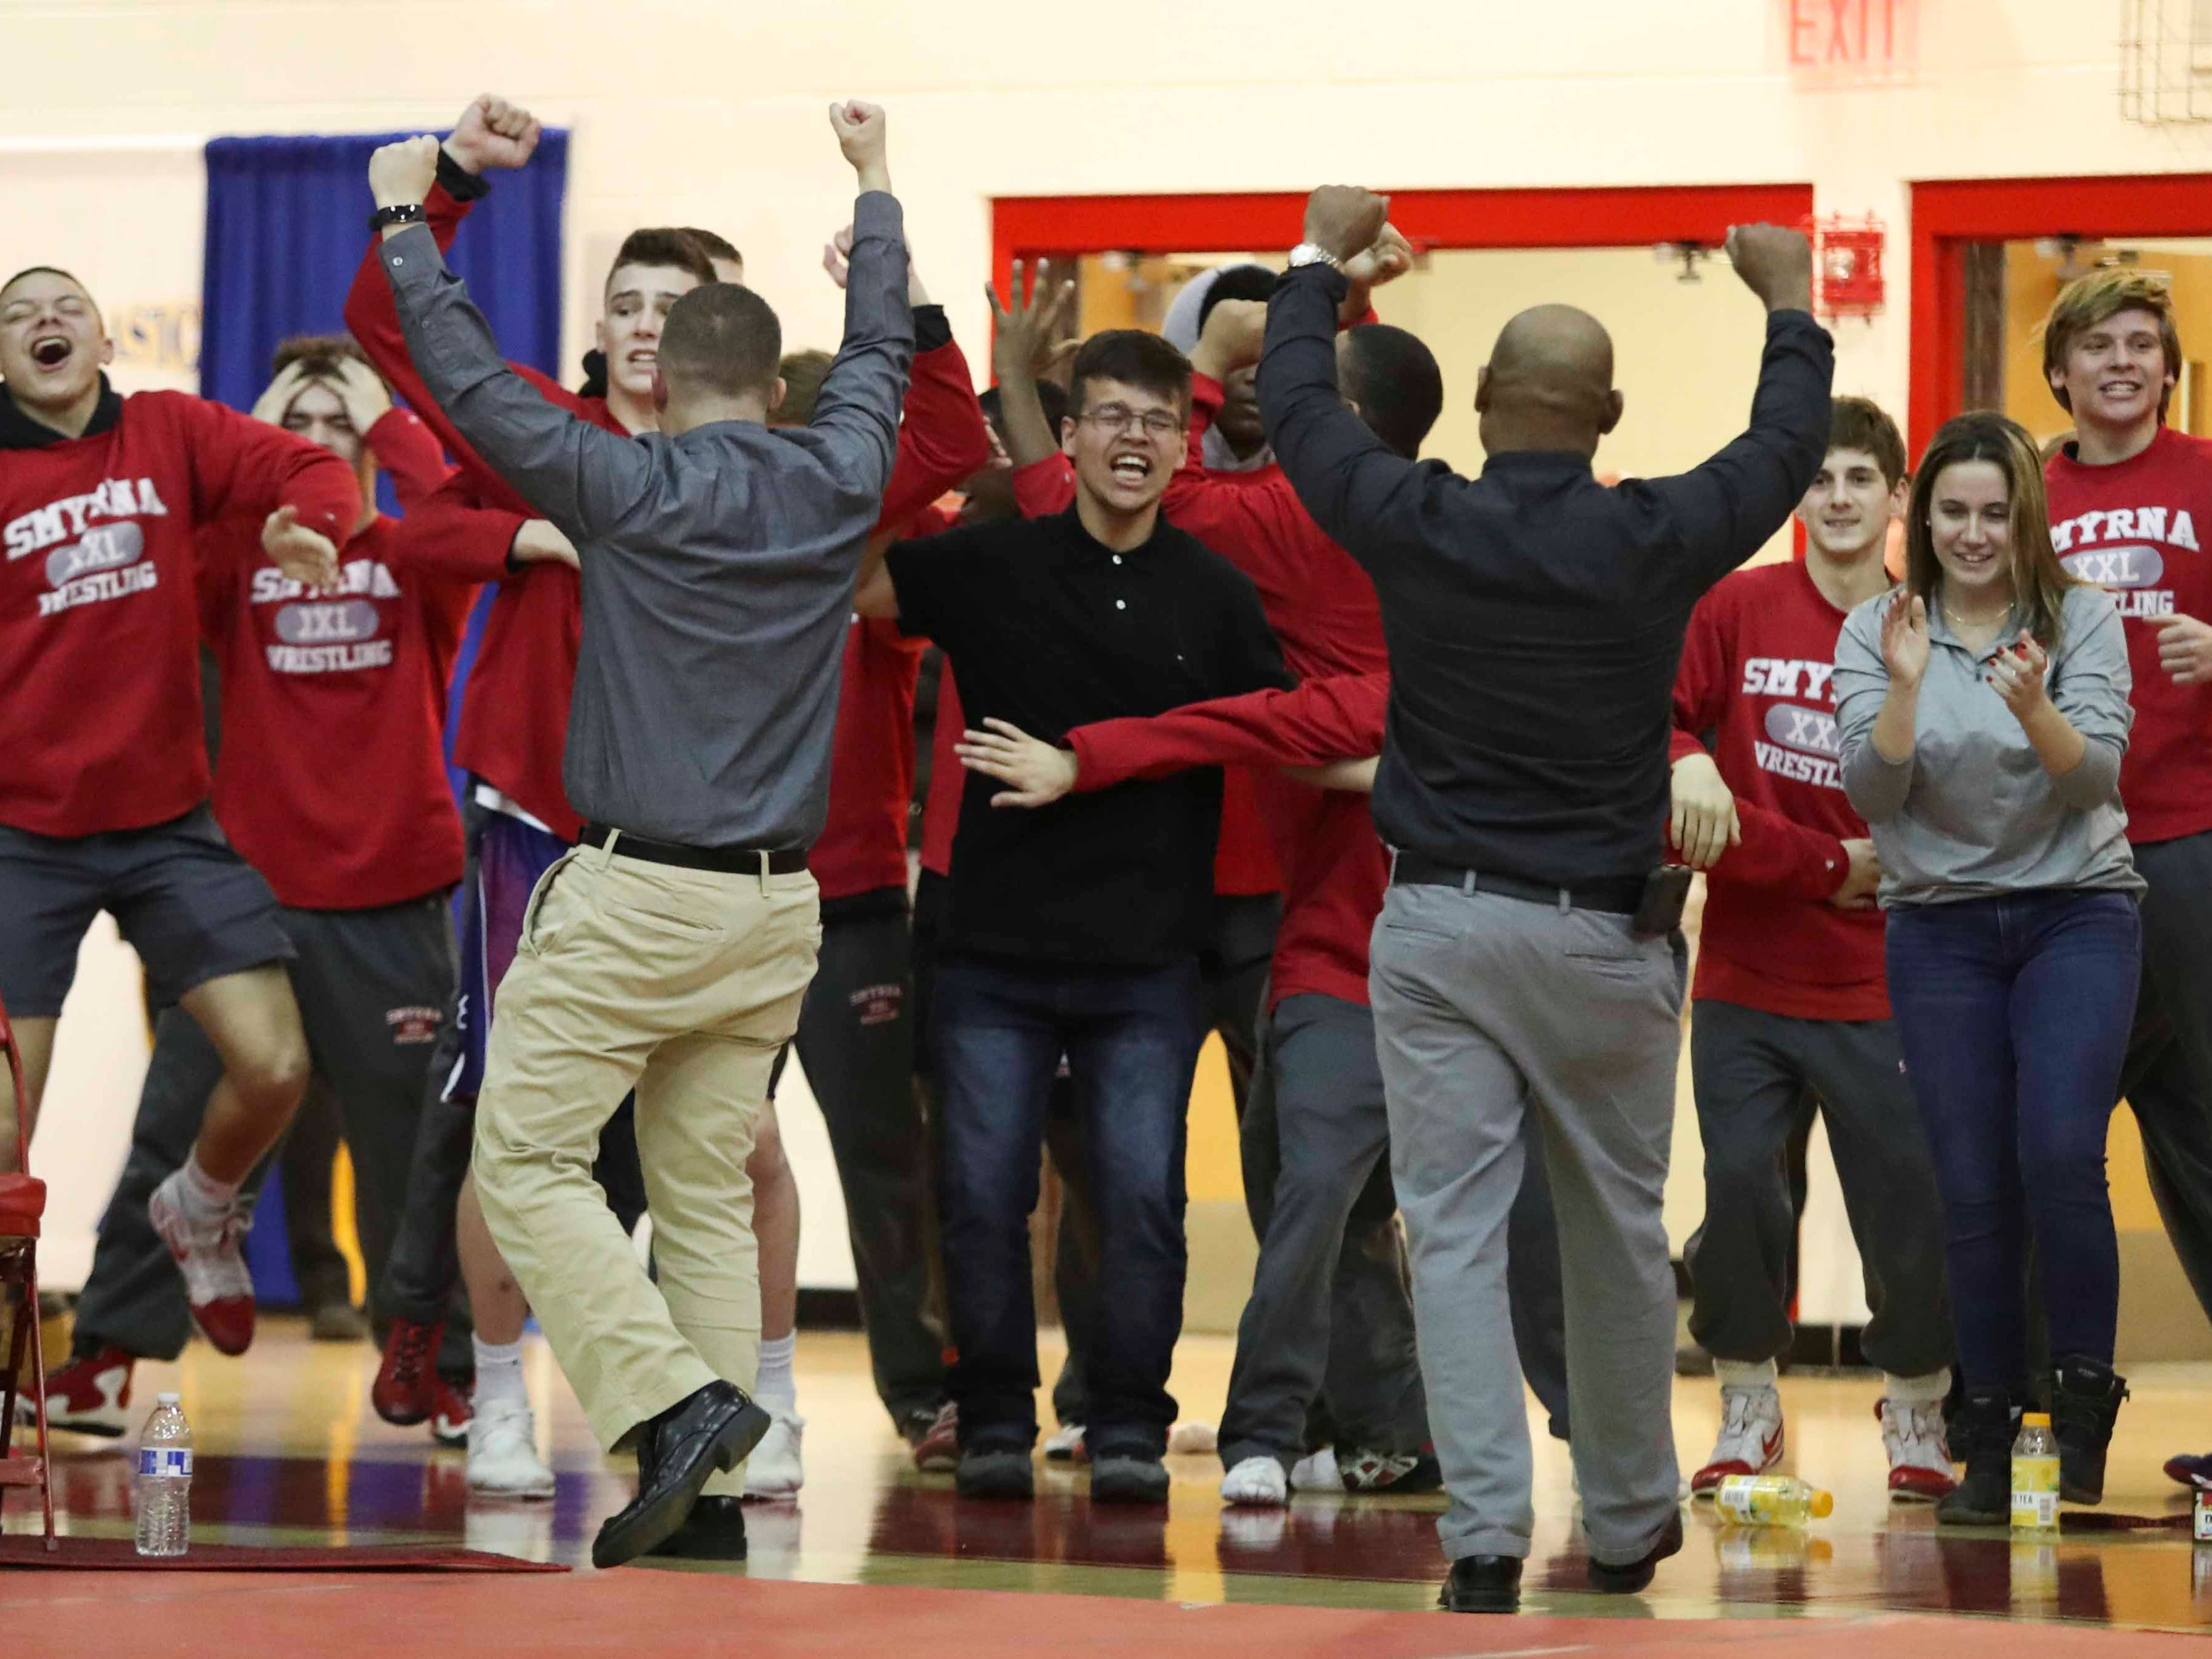 Smyrna cheers after winning the Division I in the DIAA dual meet championship in the final round versus Caesar Rodney Saturday at Smyrna High School.